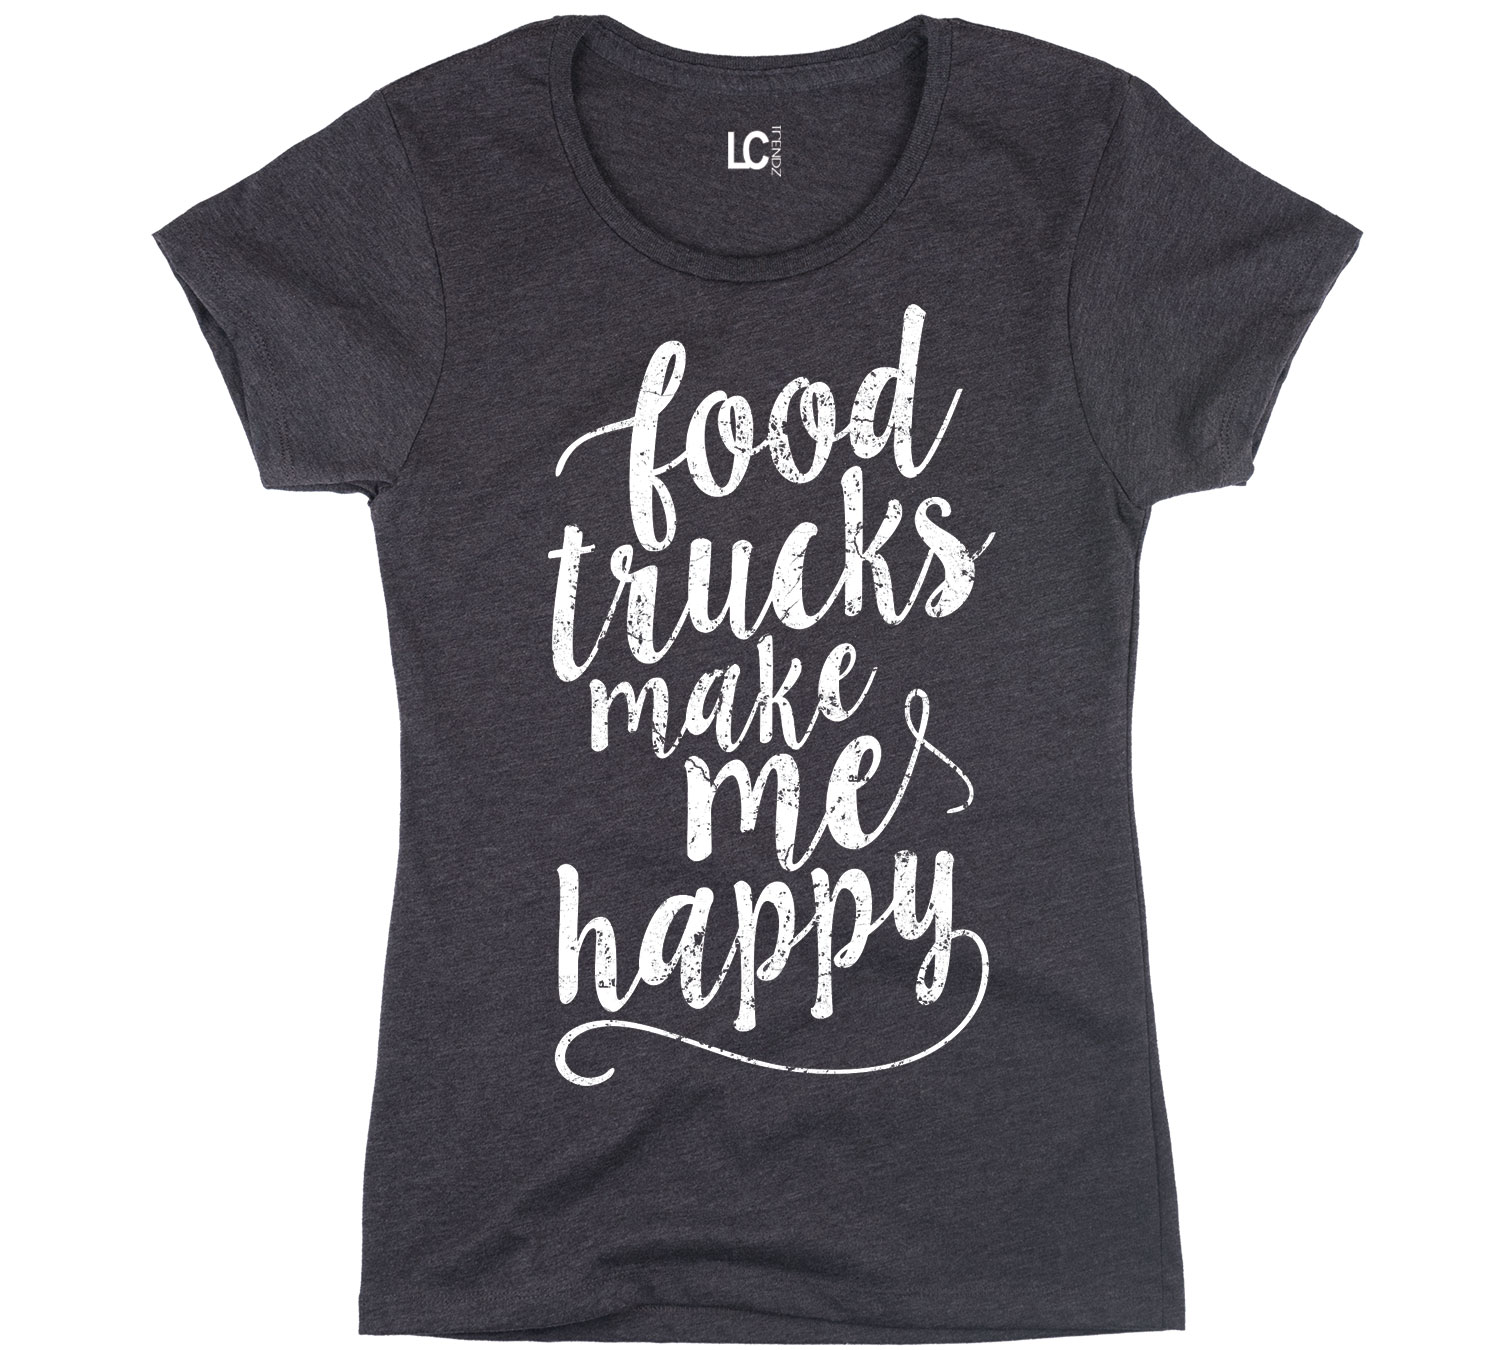 Food-Trucks-Make-Me-Happy-Hipster-Foodie-Local-Hip-Style-Womens-T-Shirt